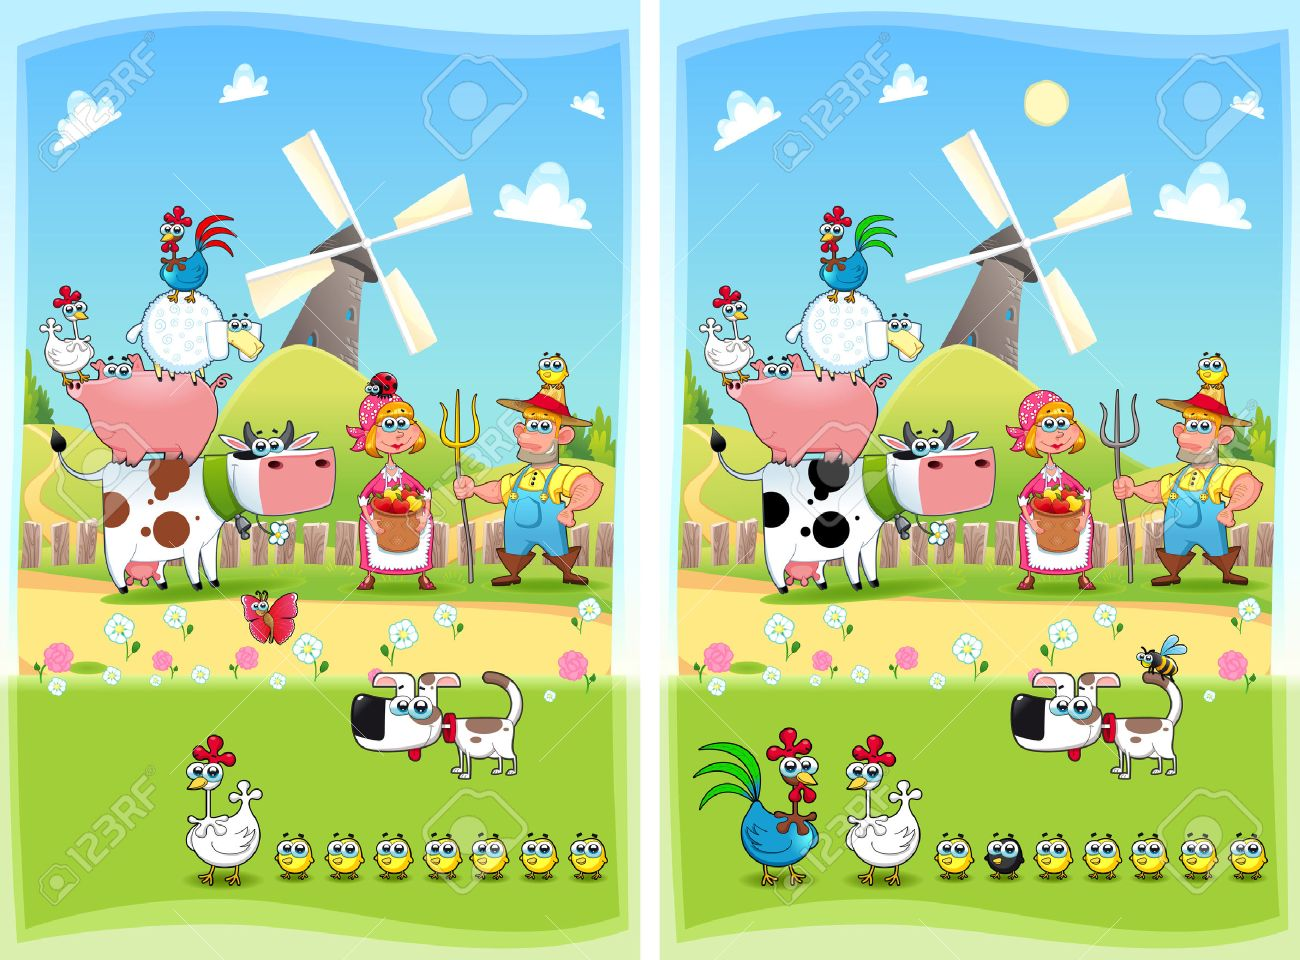 1280 spot the differences stock vector illustration and royalty spot the differences two images with ten changes between them vector and cartoon illustrations altavistaventures Images